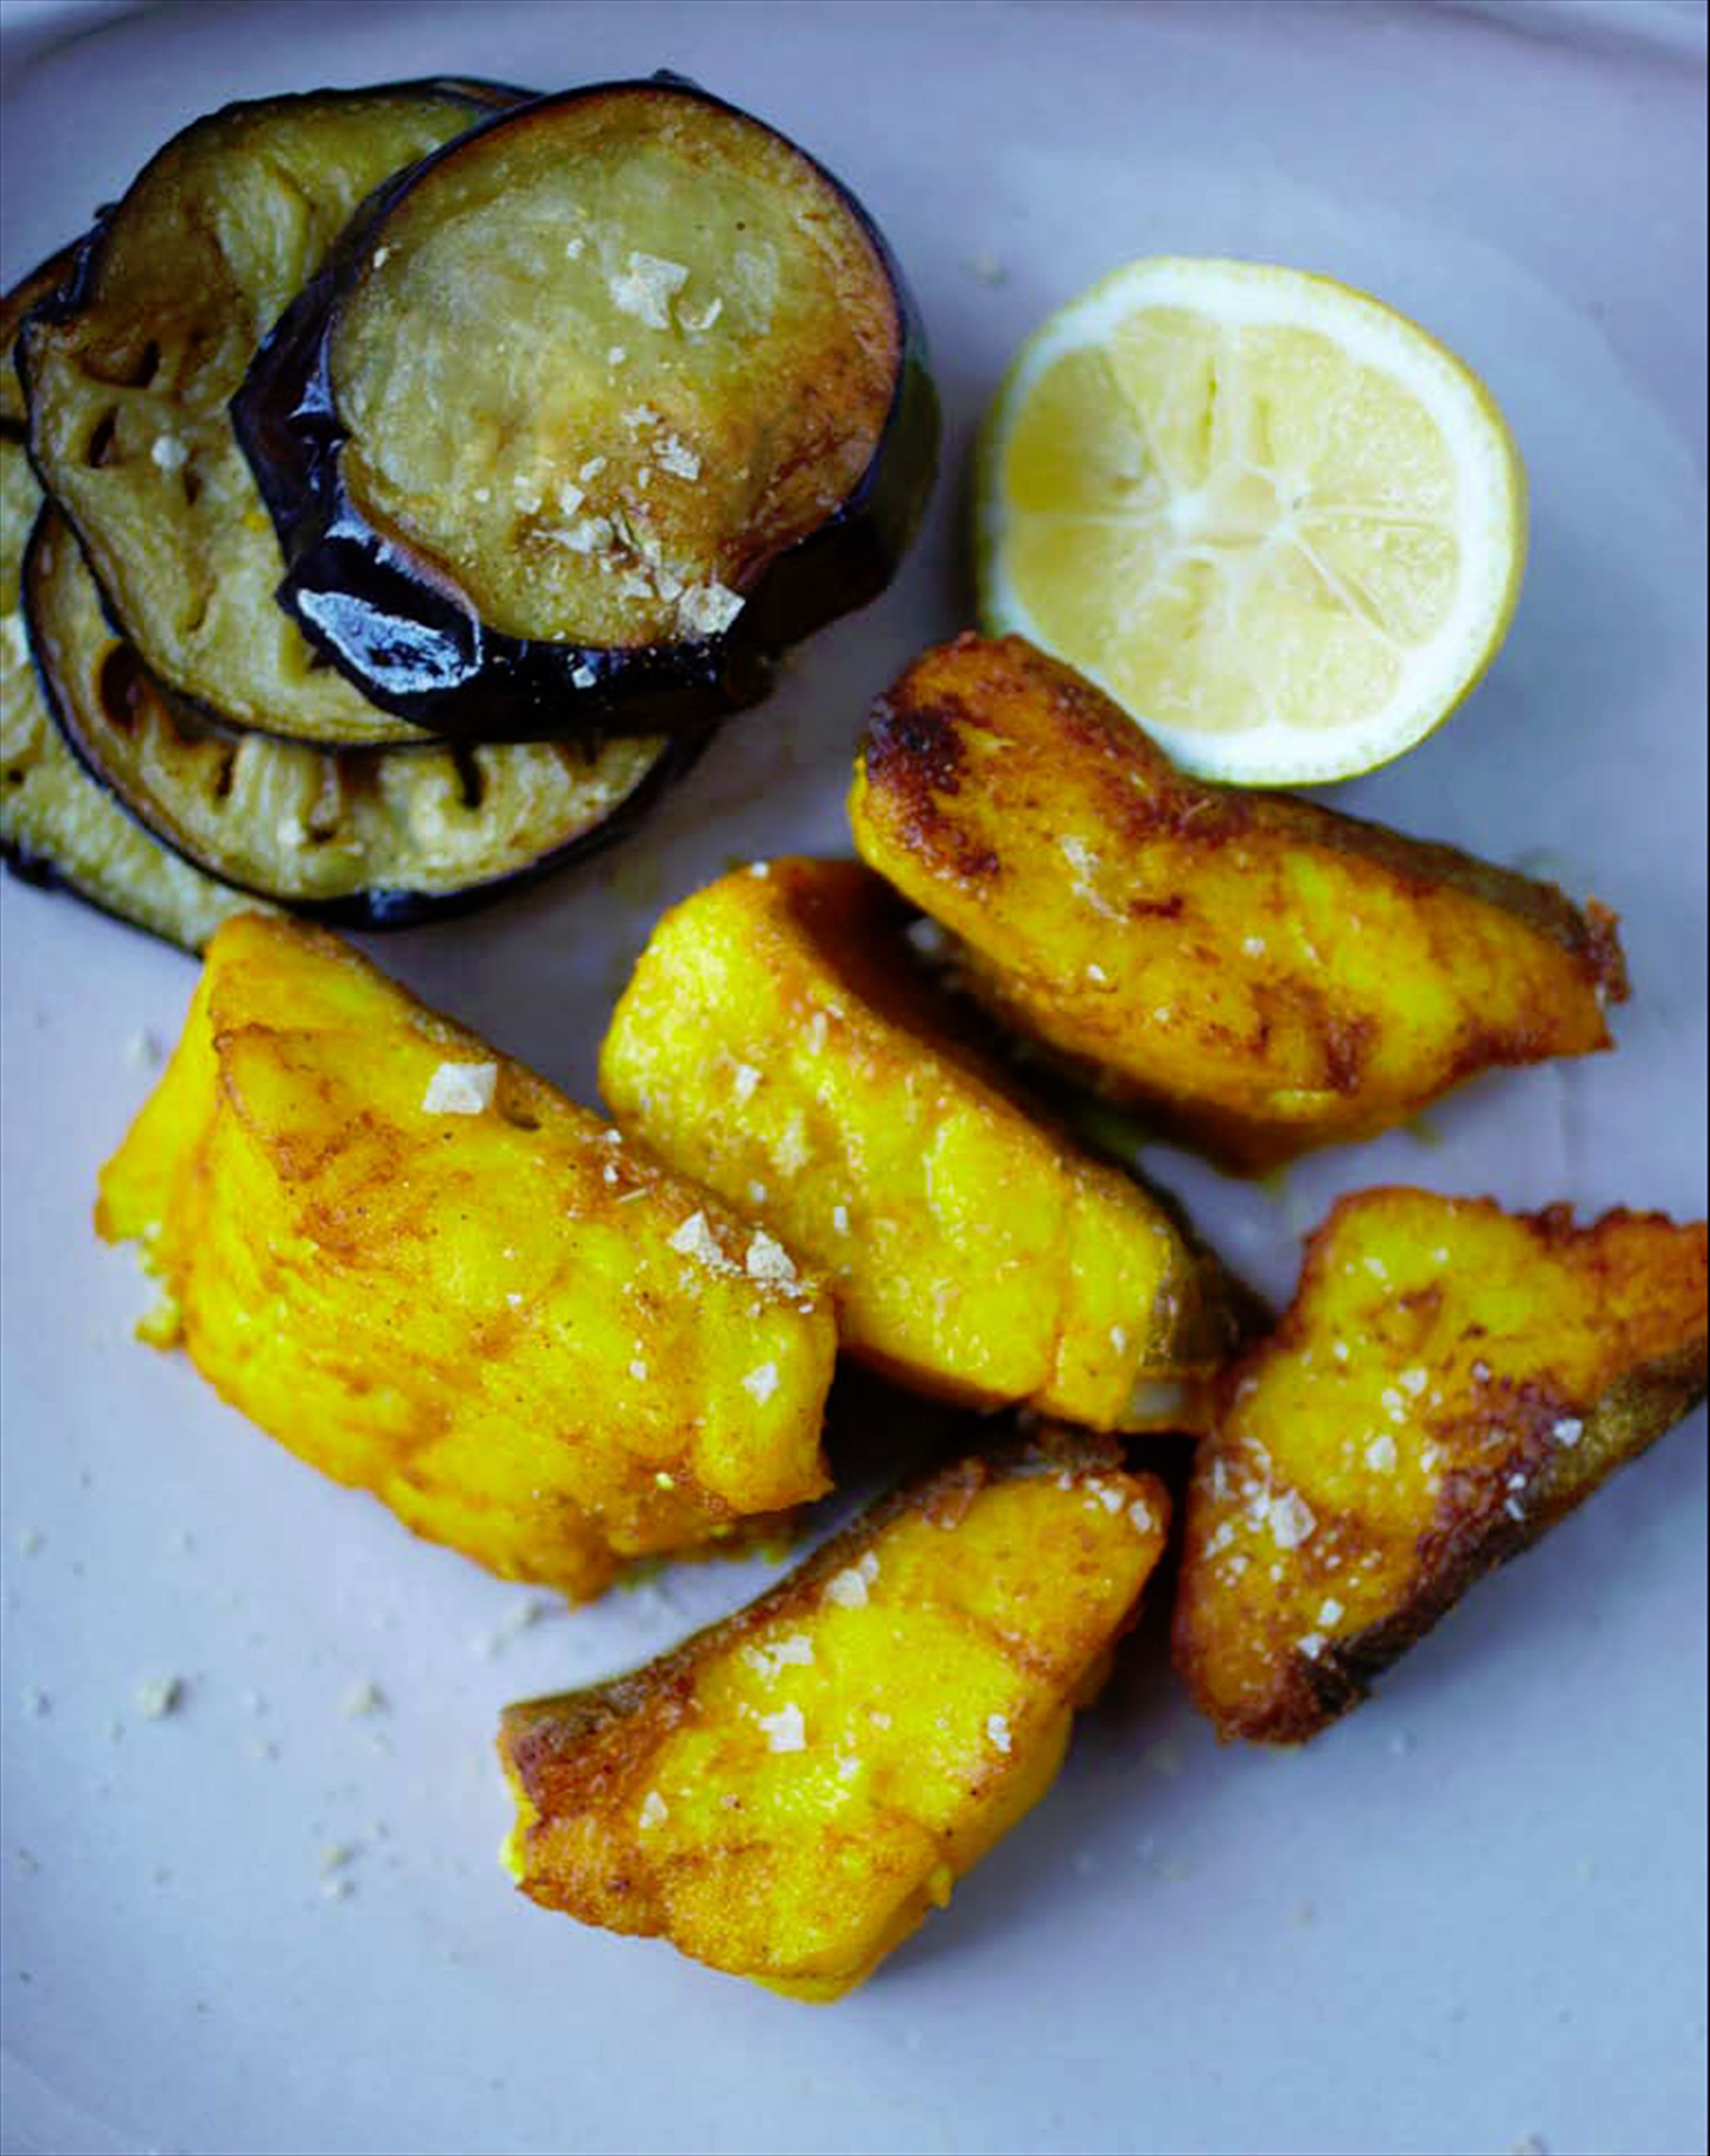 Fried fish & aubergines